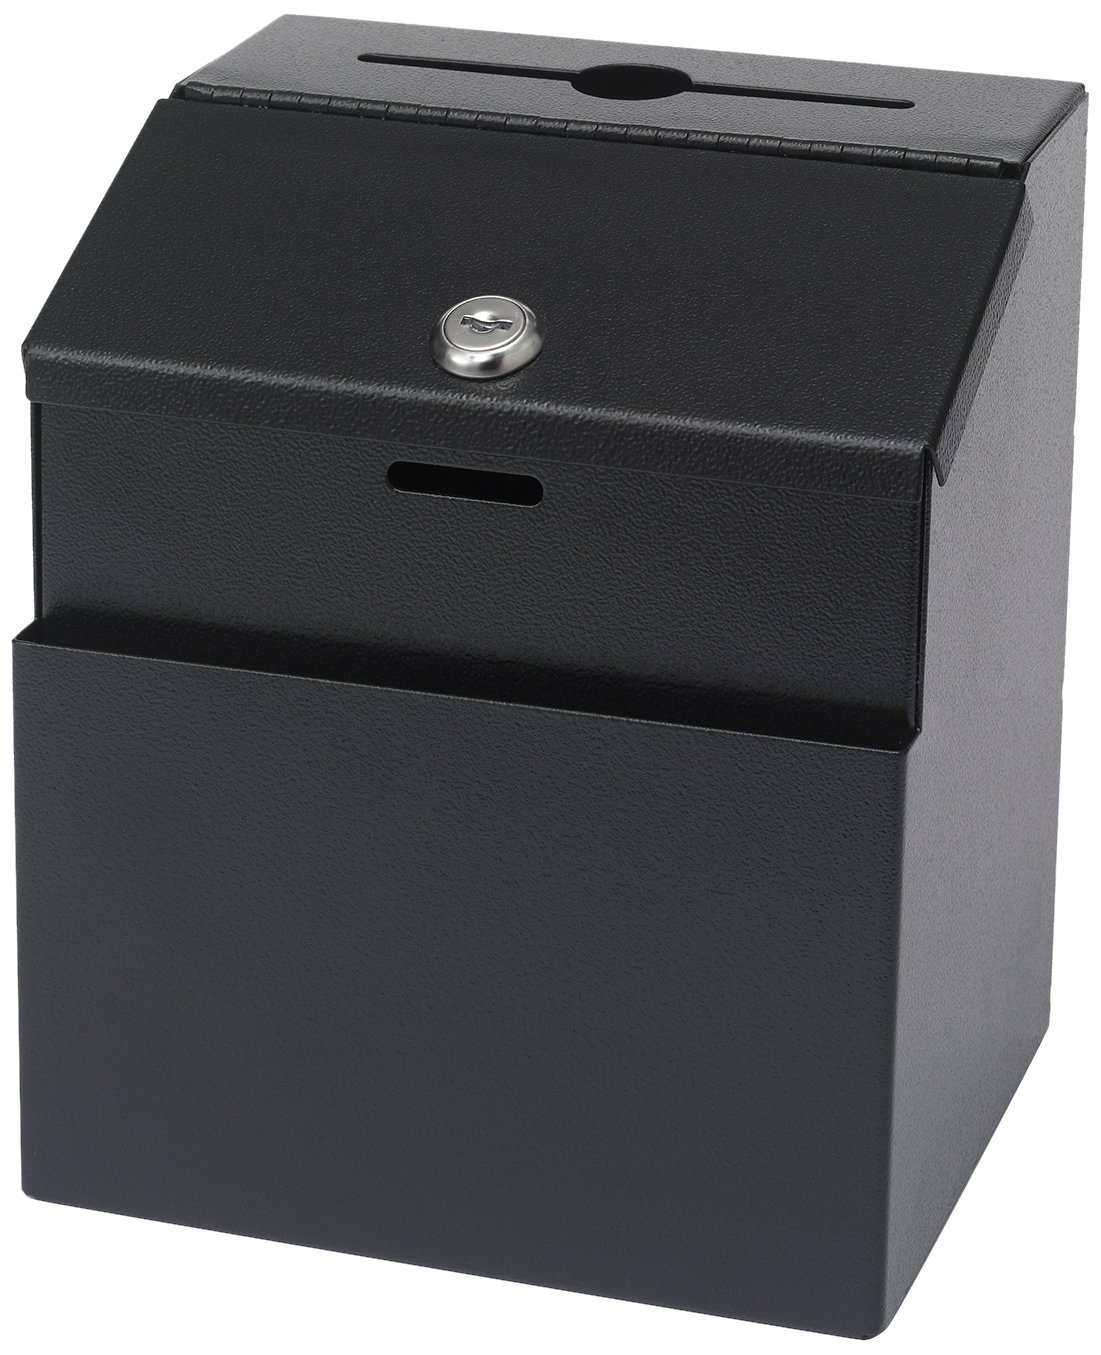 Safco Steel 7 x 6 x 8 1/2 Inch Suggestion/Key Drop Box with Locking Top (4232BL) Safco Products